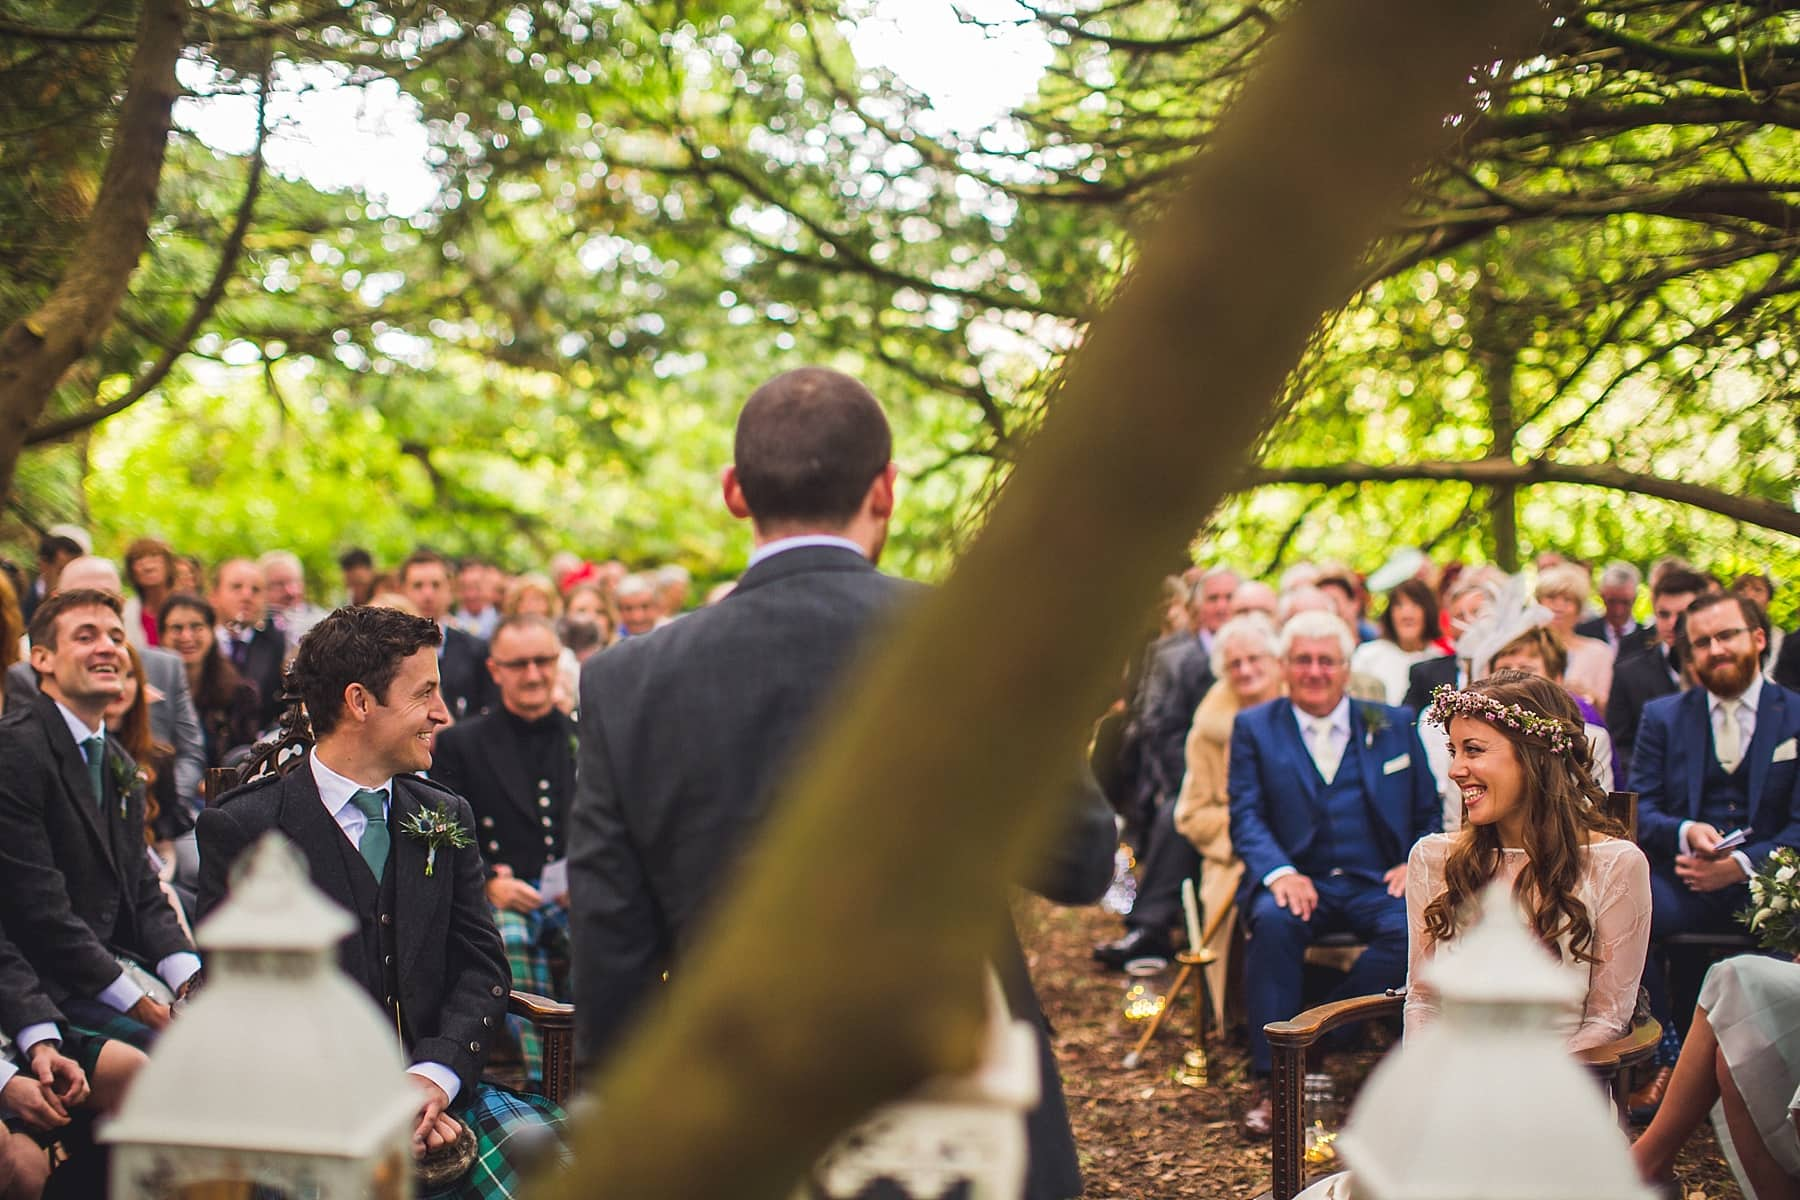 Markree Castle,humanist wedding,irish bride,scottish groom,sligo wedding photographer,